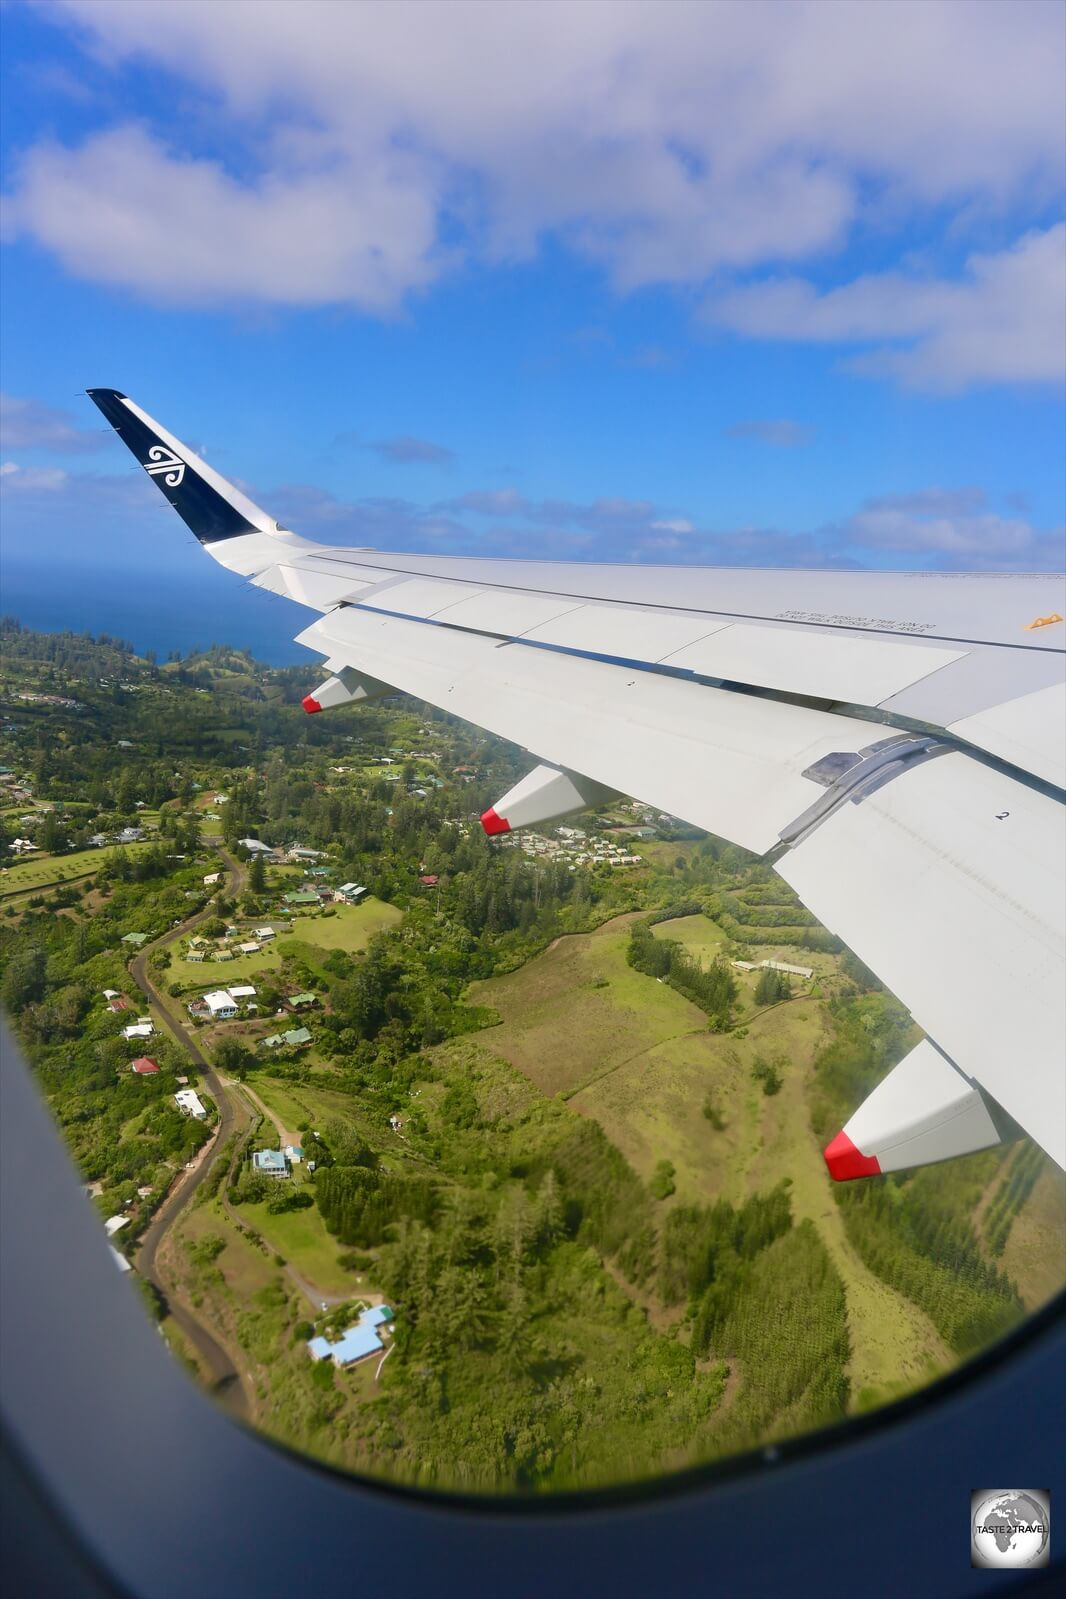 A final view of Norfolk Island from my Air New Zealand flight.